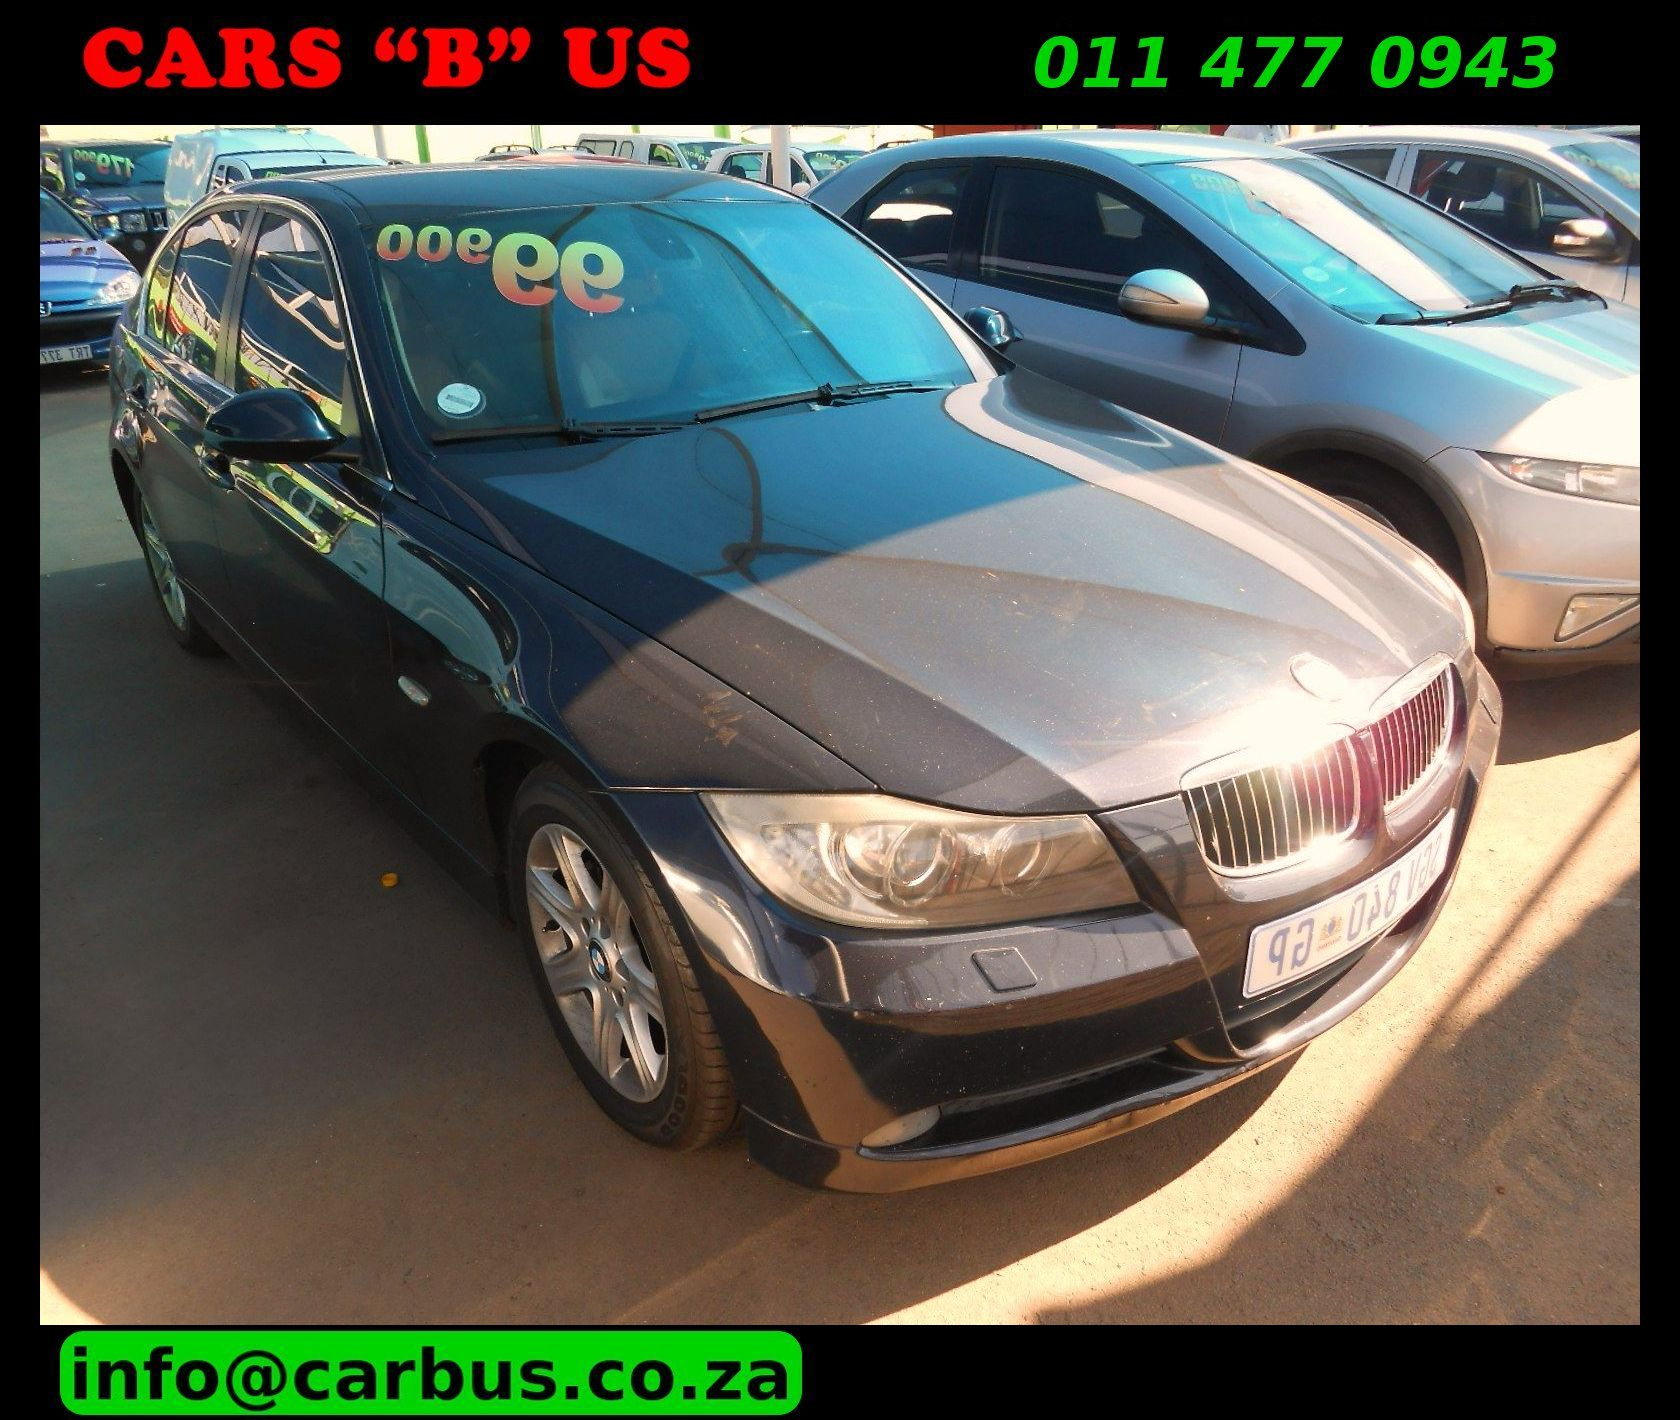 """2005 Bmw For Sale: Contact Cars """"B"""" Us For Used Cars For Sale"""